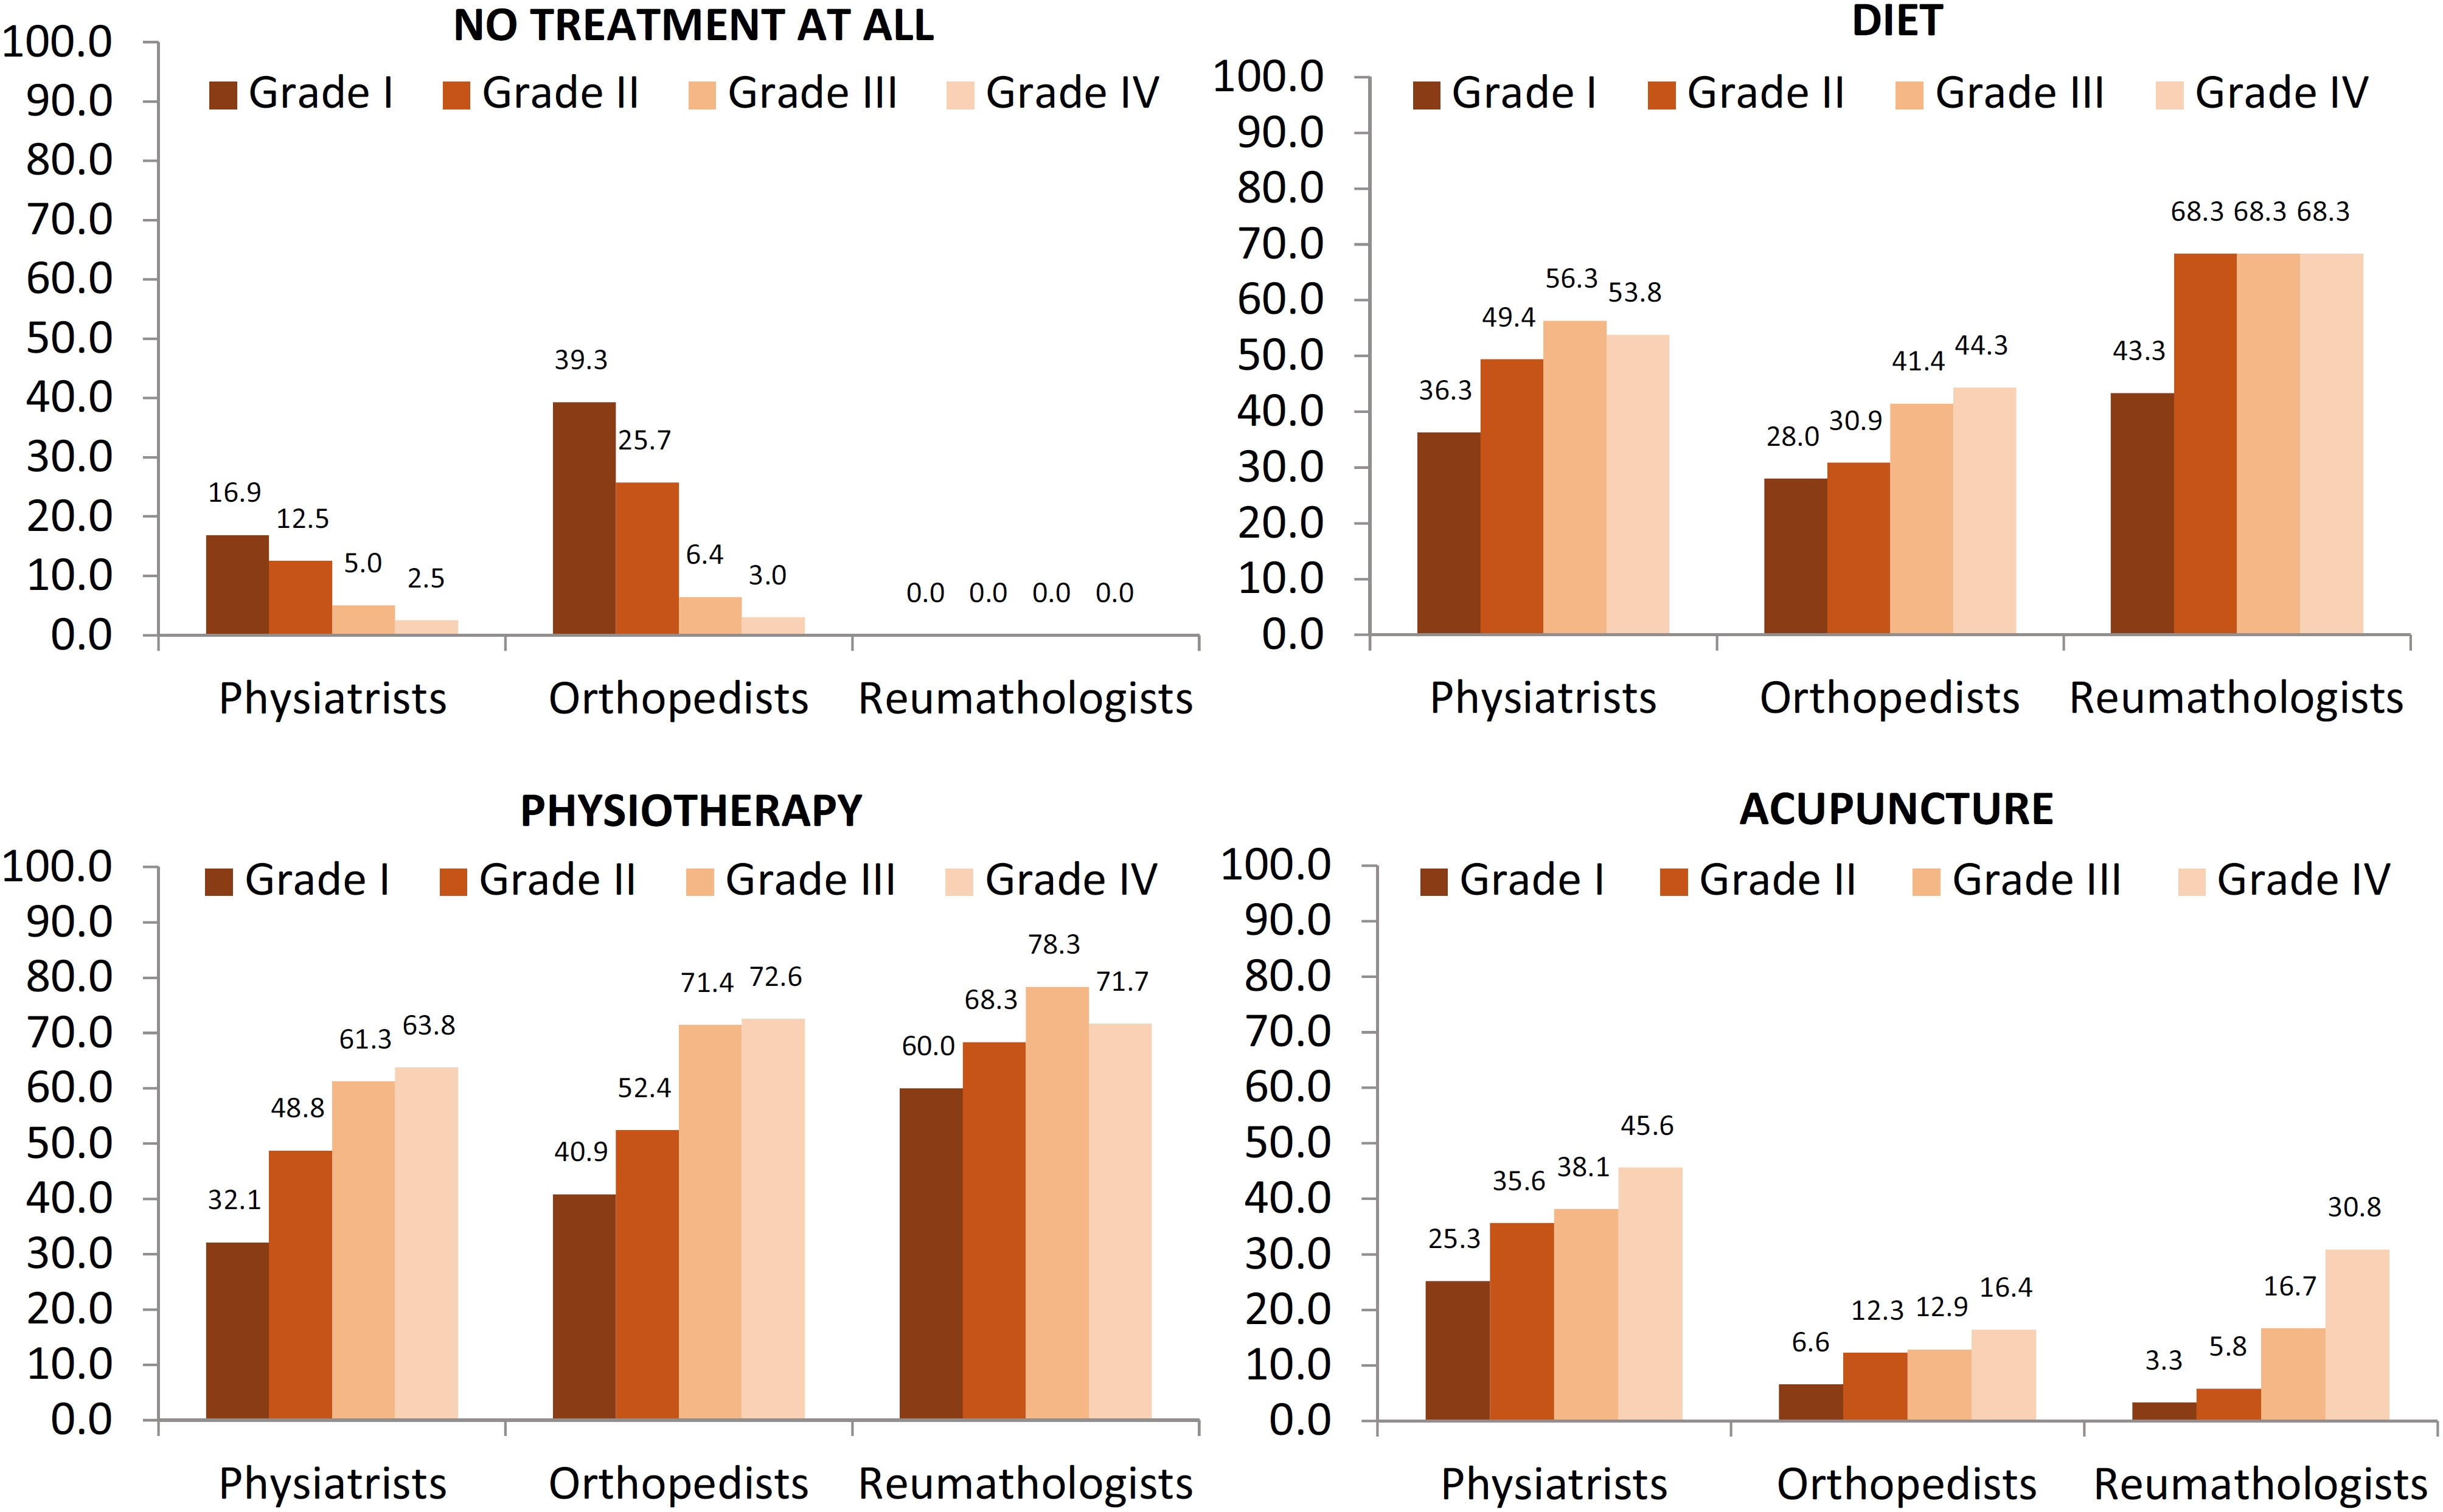 Nonpharmacological treatments of OA in Brazil among specialties